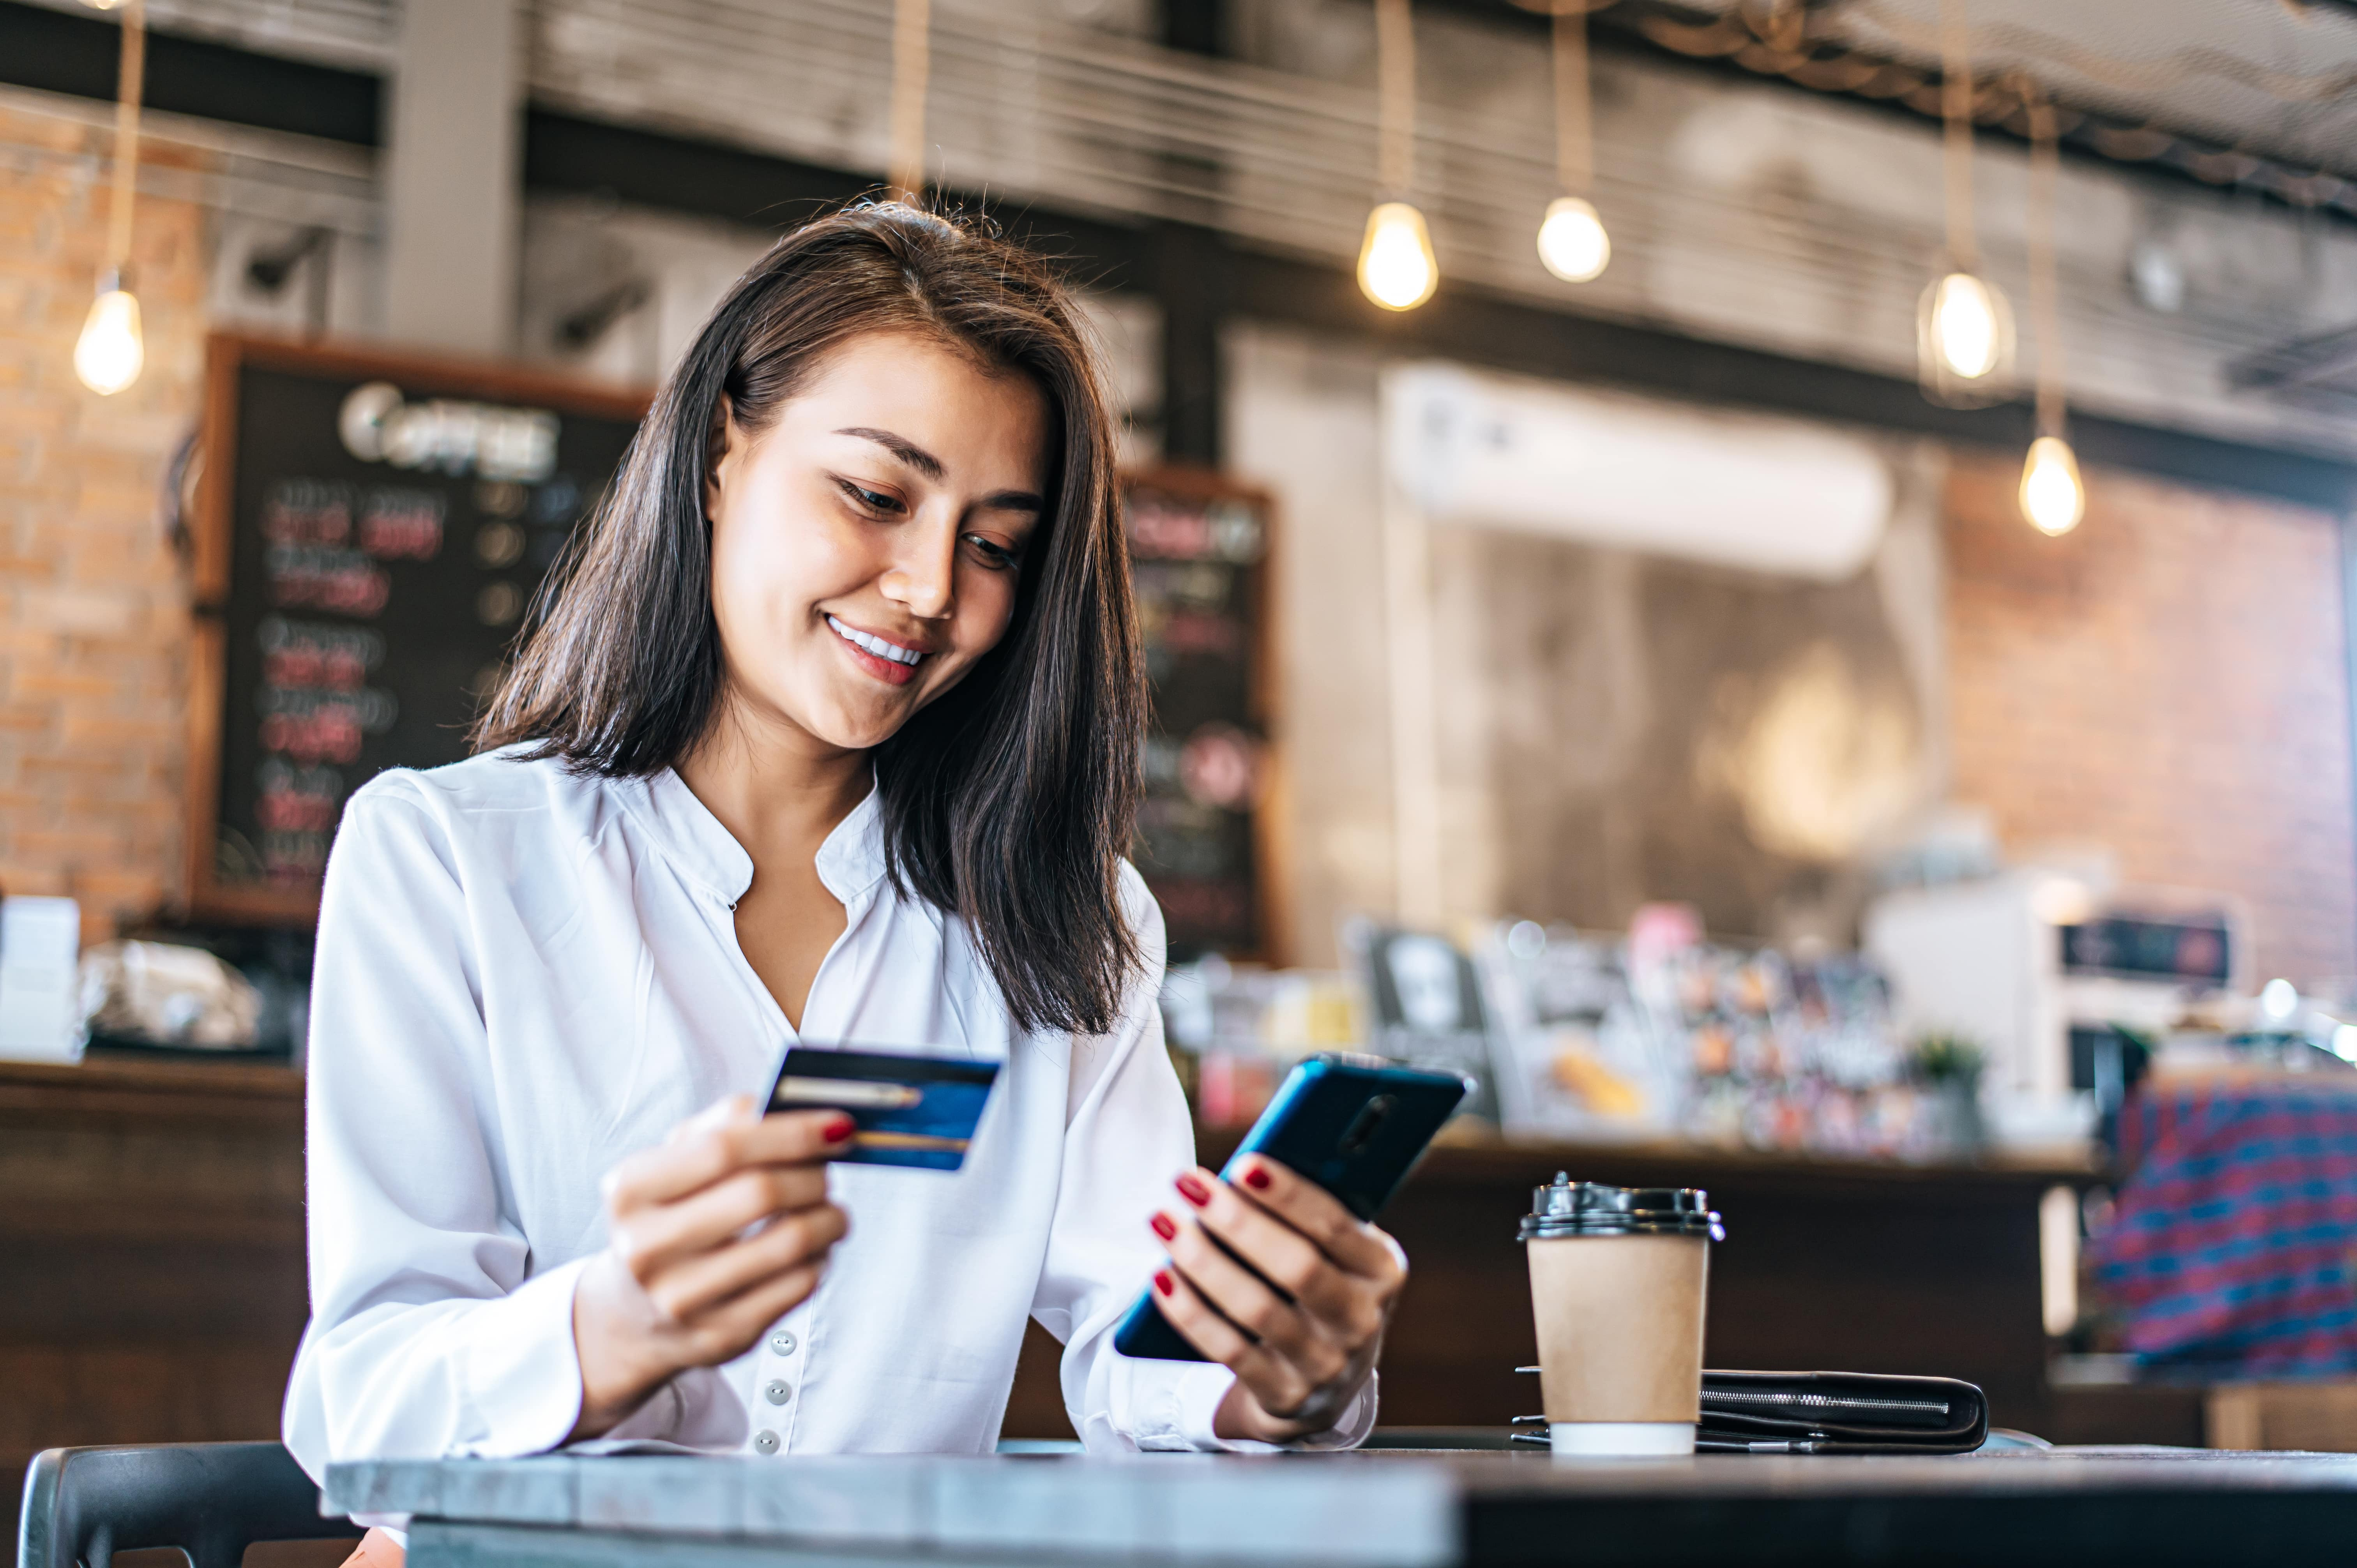 pay-goods-by-credit-card-through-smartphone-coffee-shop-min.jpg